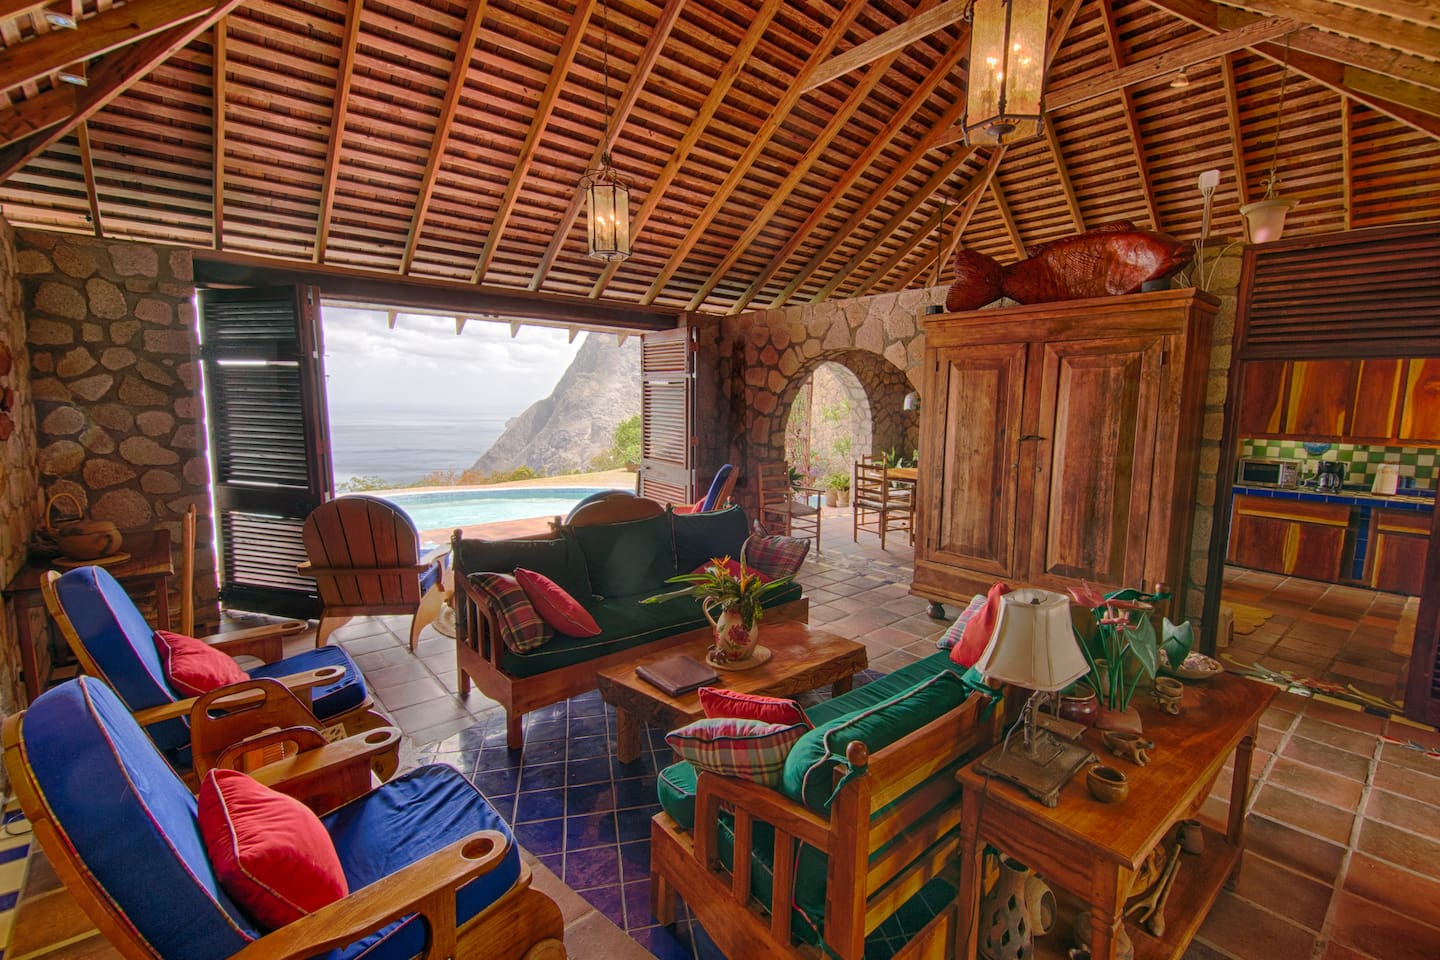 Villa Piton's living room has expansive views of BOTH the pitons and the blue Caribbean. Perfectly located within the Piton Management Area of the World Heritage Site, Villa Piton is one of only a very few private homes with this distinction and this view! Architectural perfection personified.